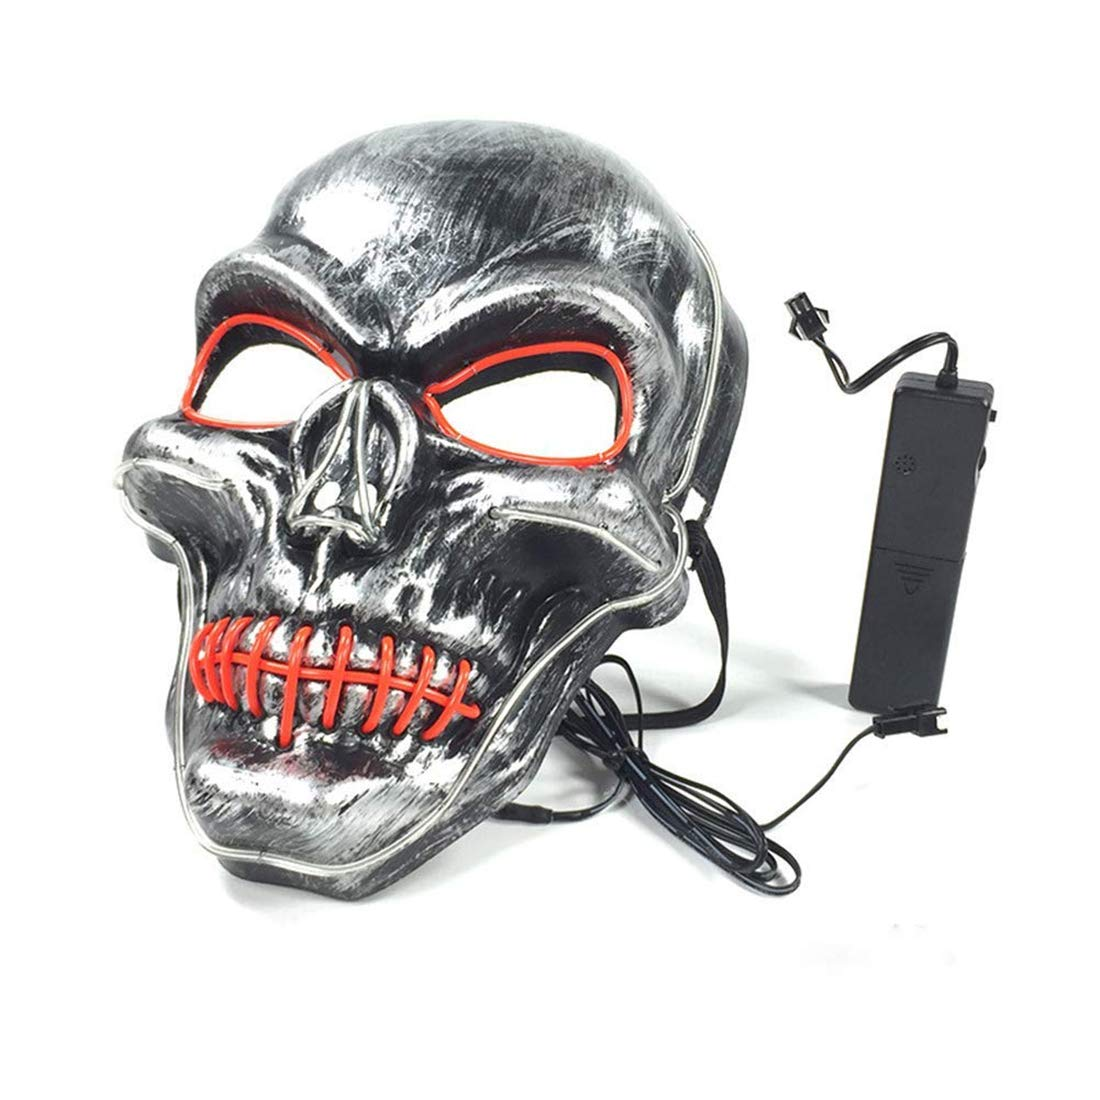 Halloween Mask LED Cosplay LED Glow Scary Light Up Masks for Festival Party Parties Costume Christmas